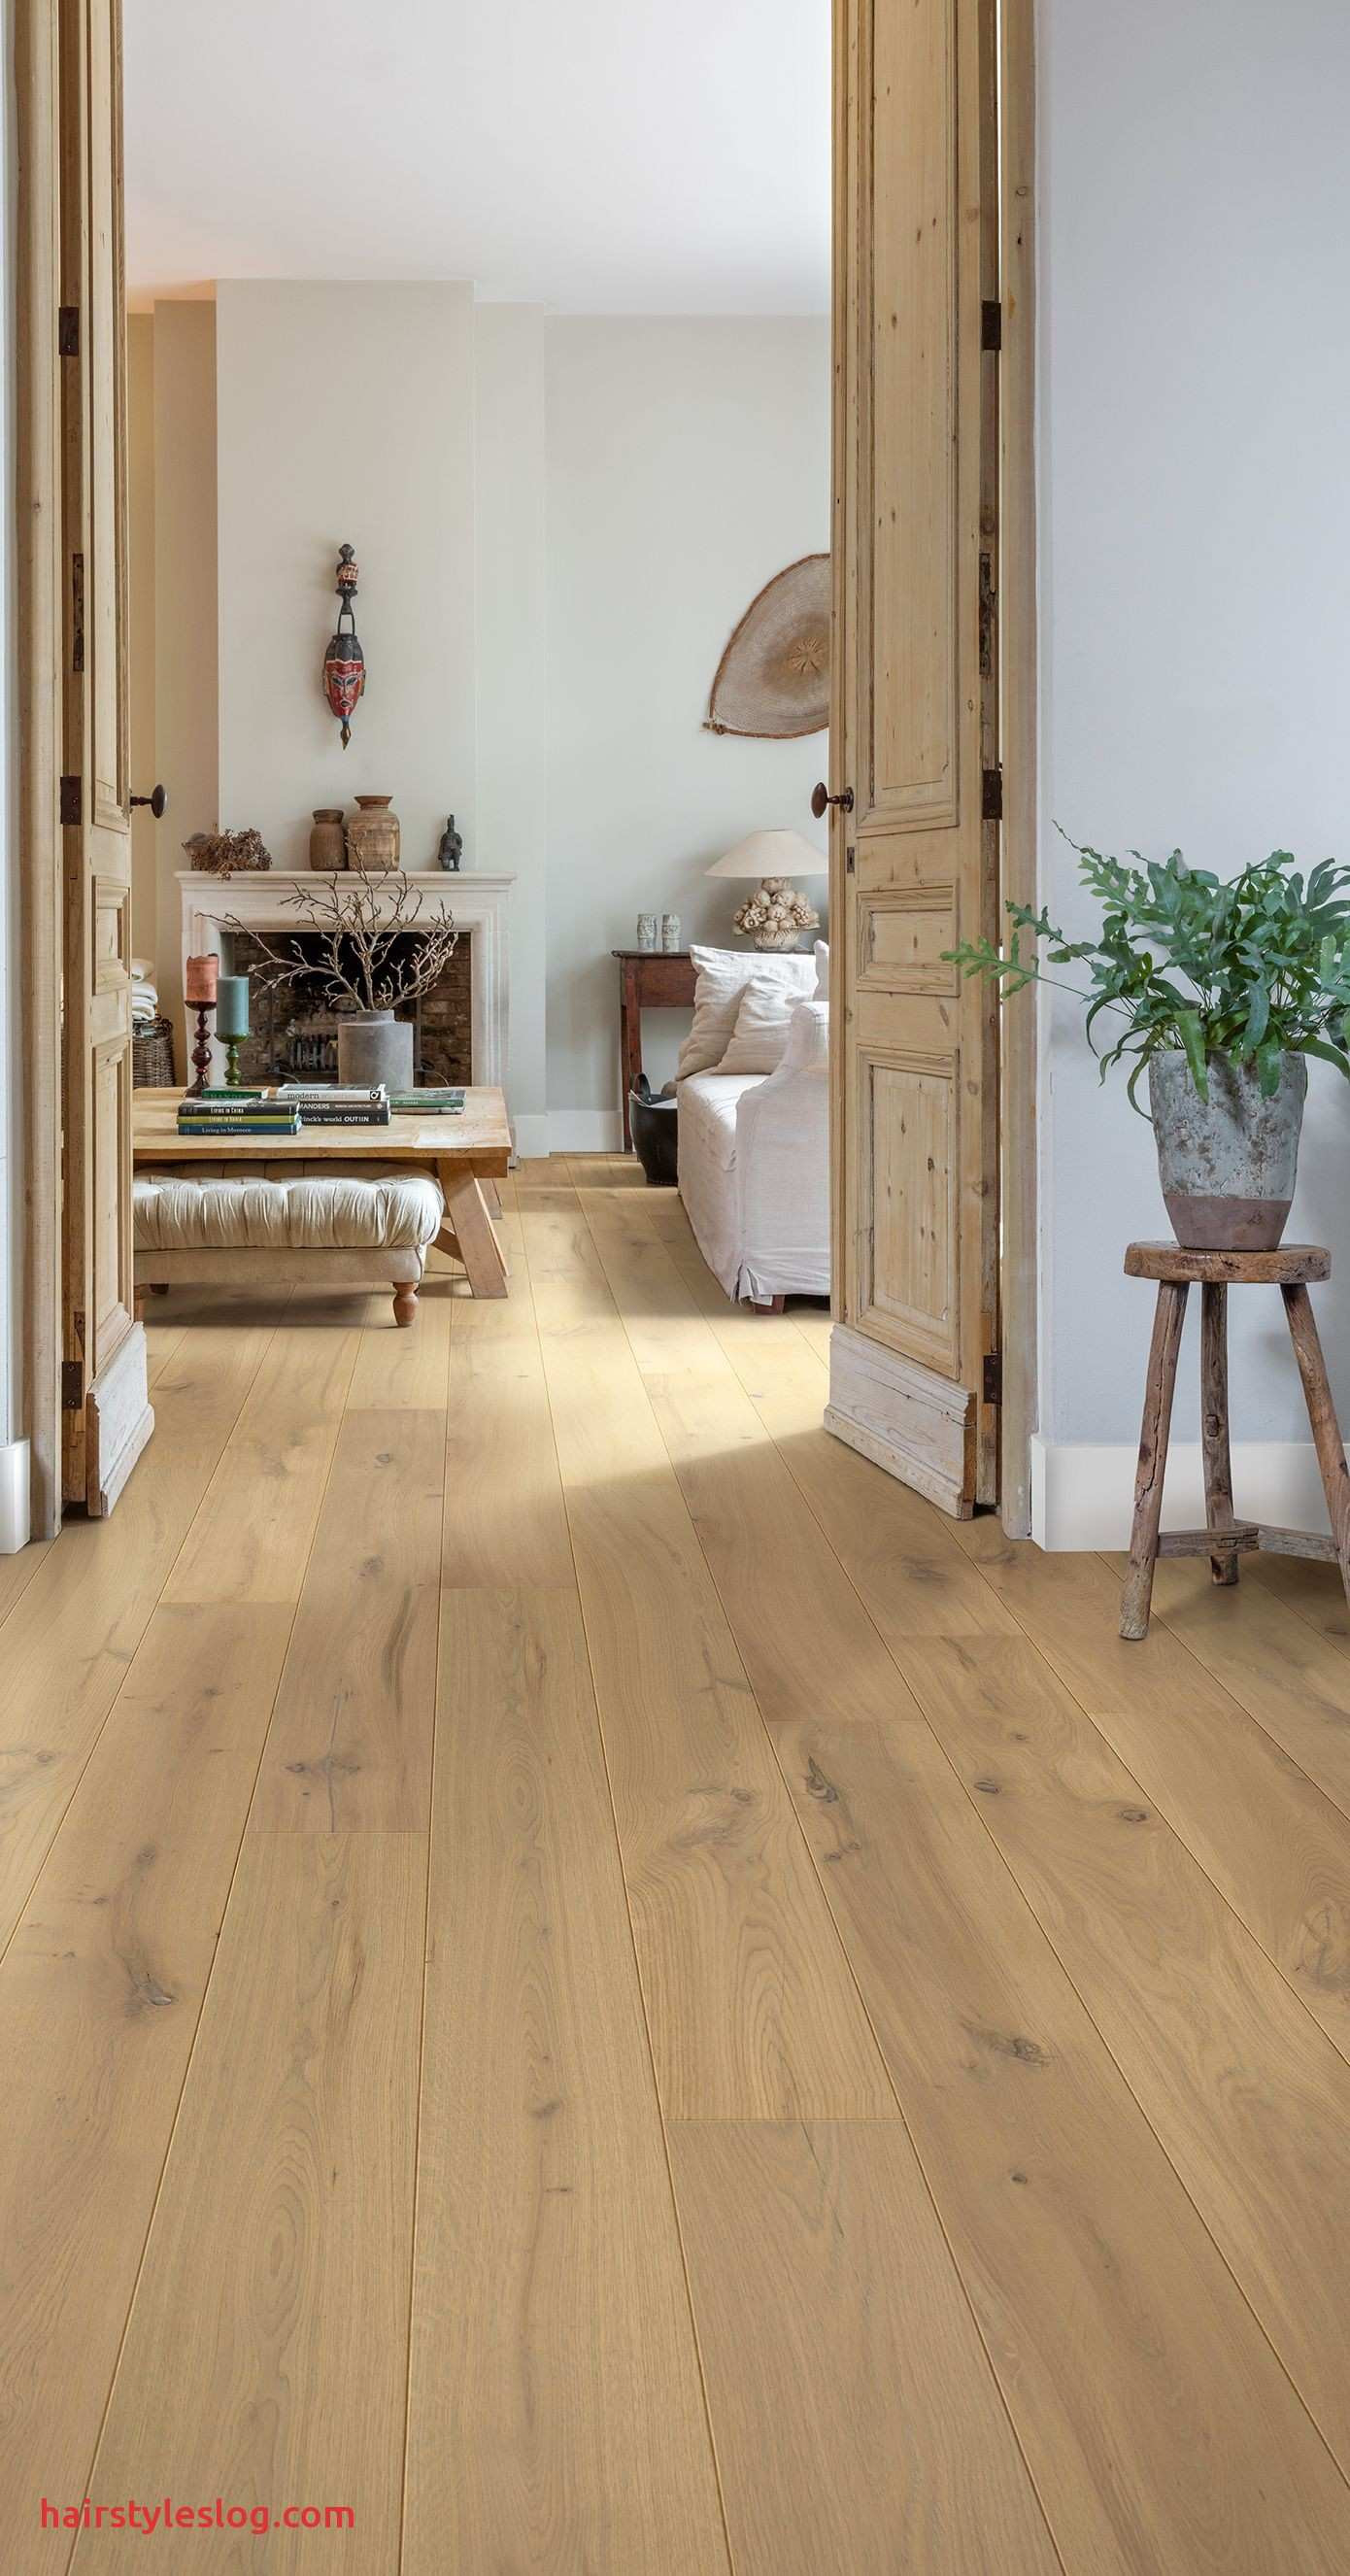 durability of laminate flooring vs hardwood of united state carpet vs laminate flooring pros and cons with regard throughout affordable carpet vs laminate flooring pros and cons remodel laminate flooring vs hardwood floor